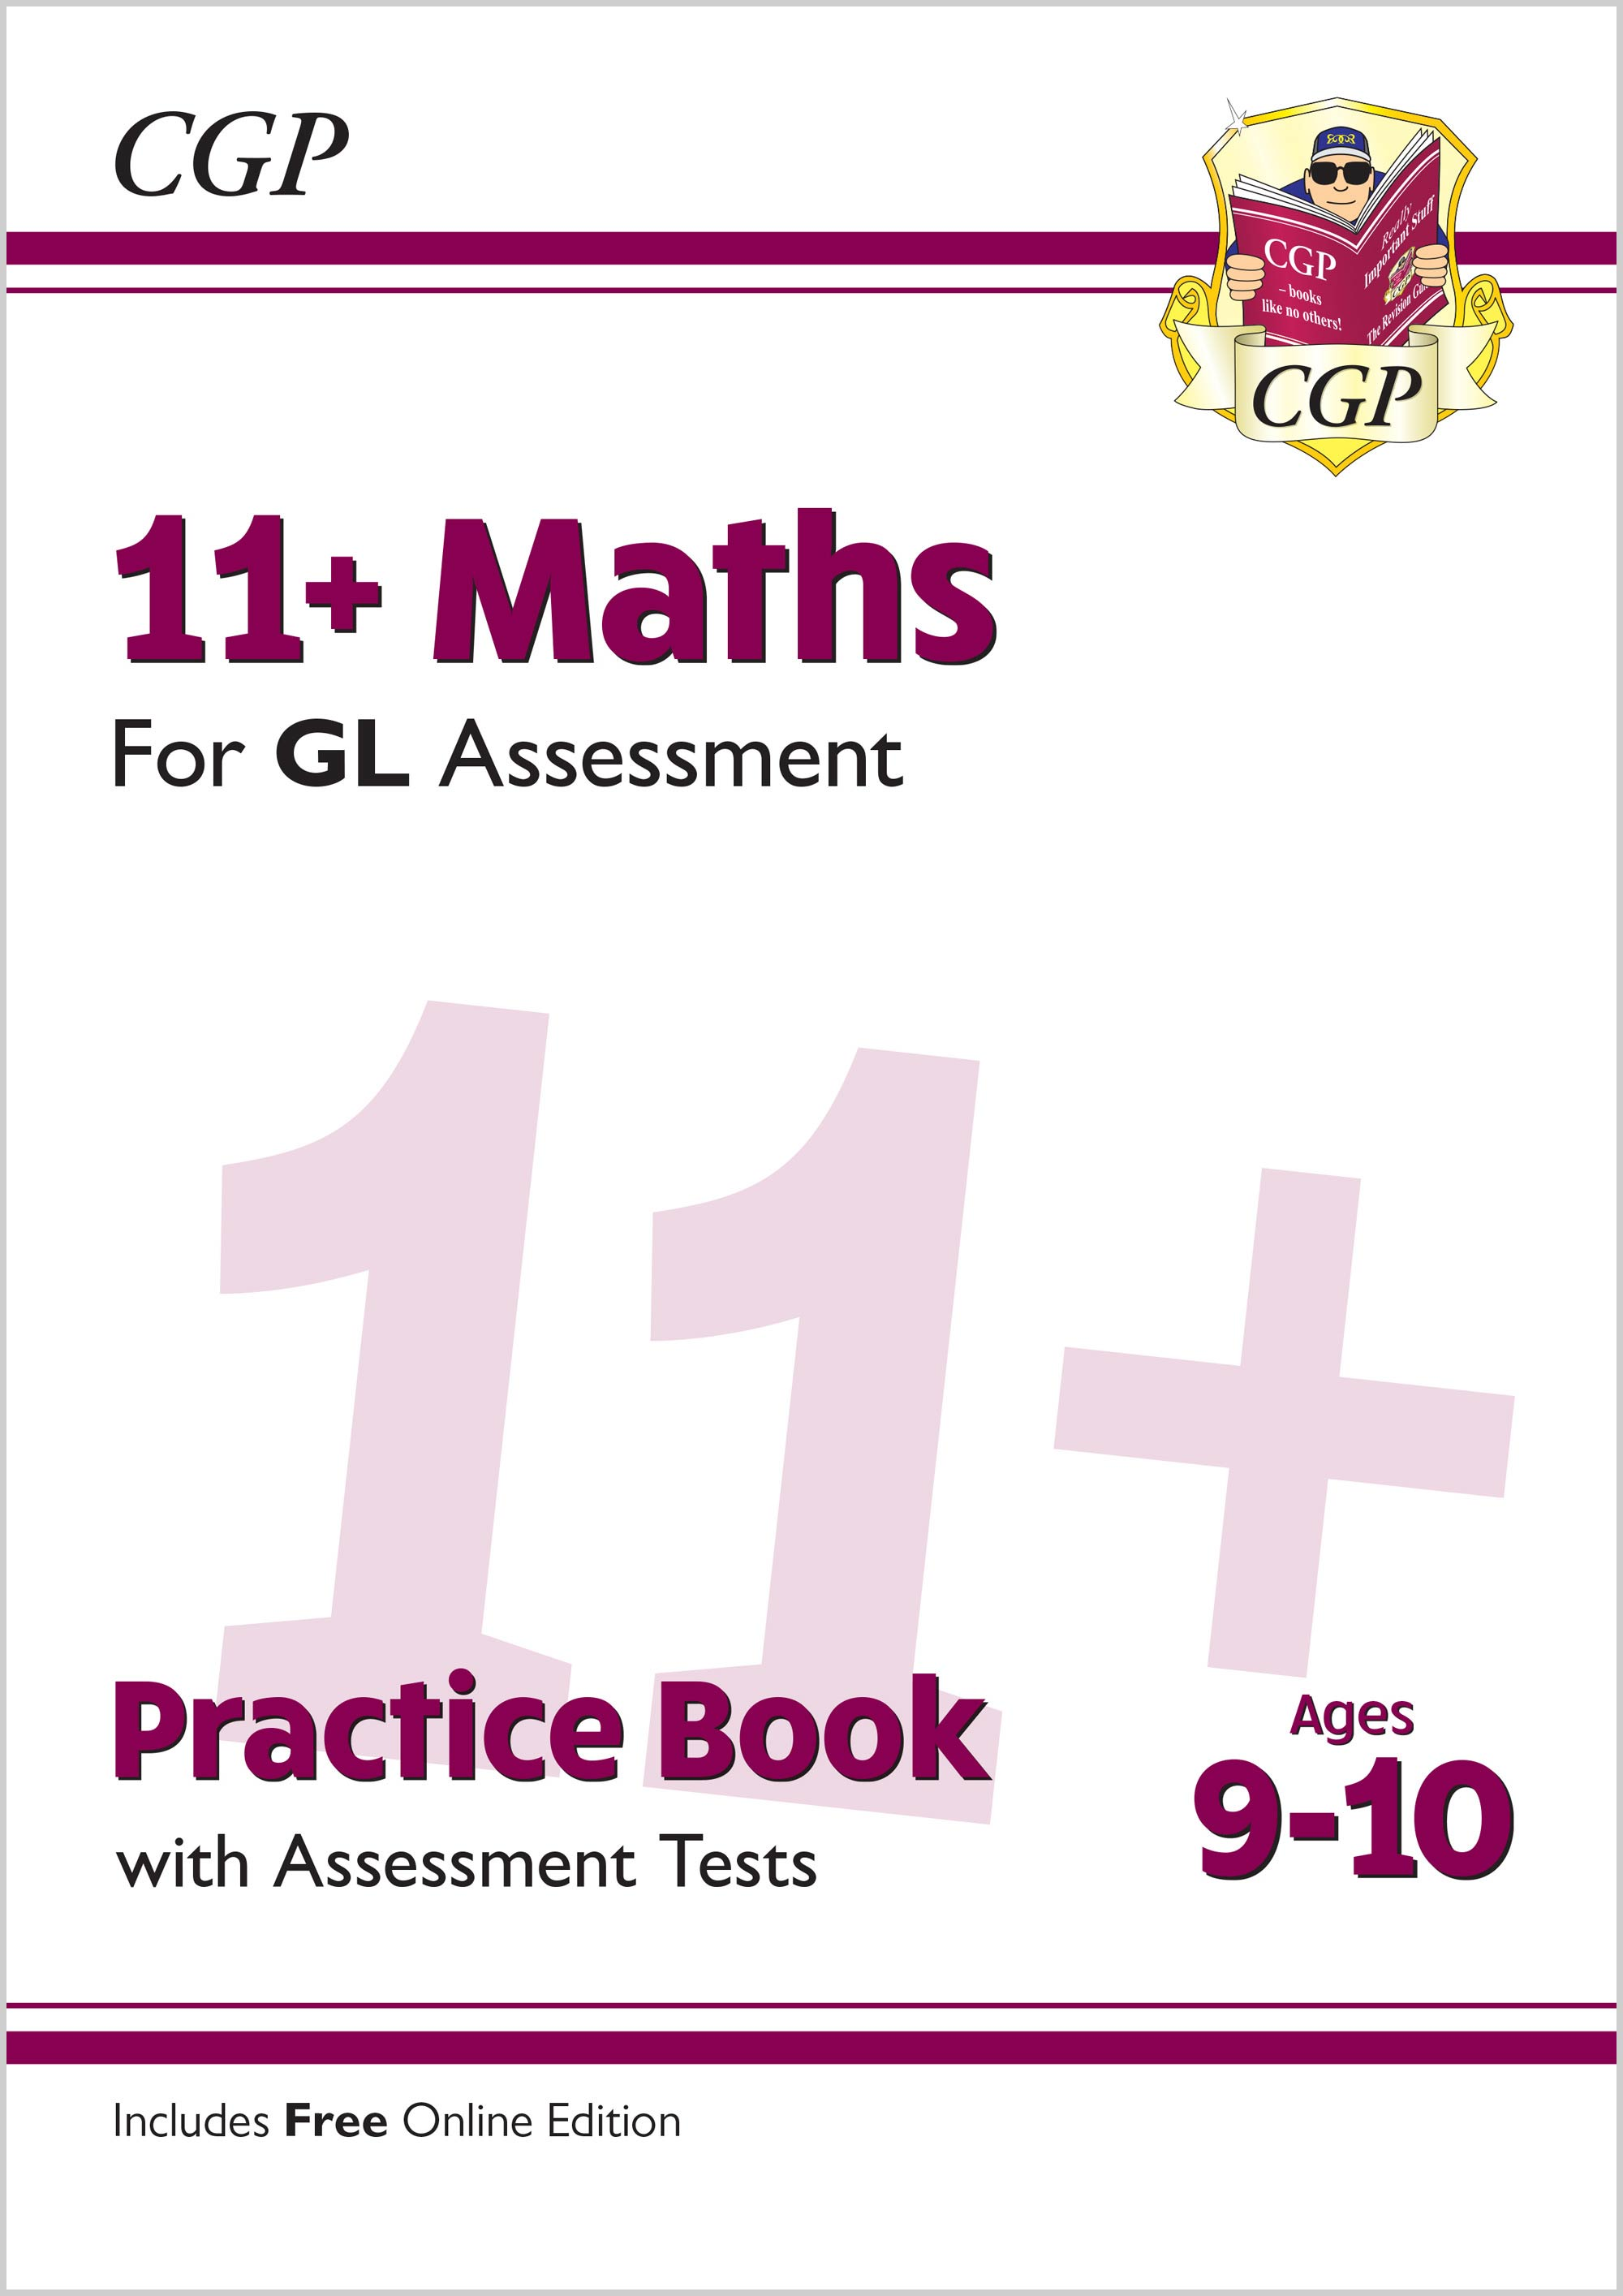 M5QE2 - 11+ GL Maths Practice Book & Assessment Tests - Ages 9-10 (with Online Edition)